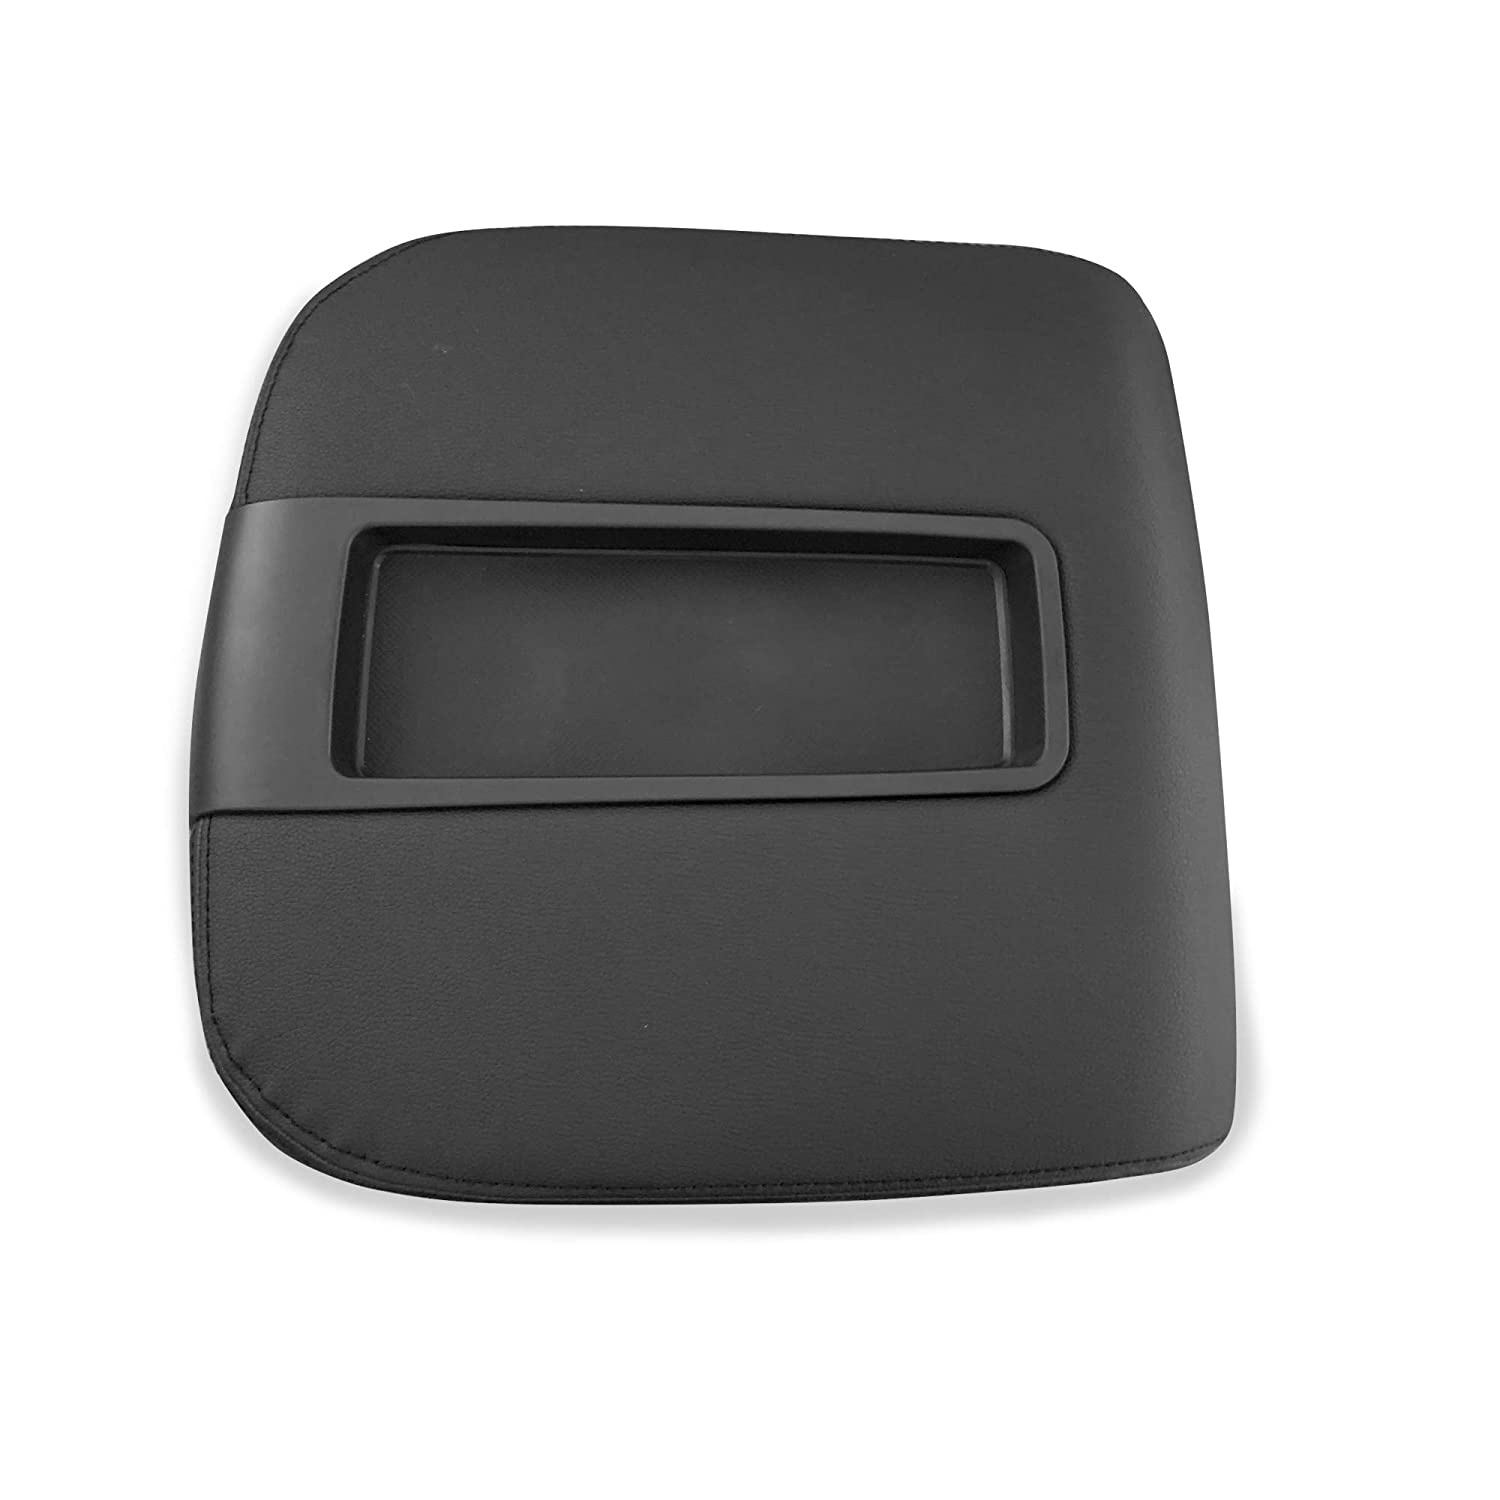 RANSOTO Center Console Lid Armrest Cover Kit fit for Chevy Avalanche Silverado Tahoe Suburban GMC Yukon XL Sierra 2007-2014 Replacement 15217111 15941534 Black Color